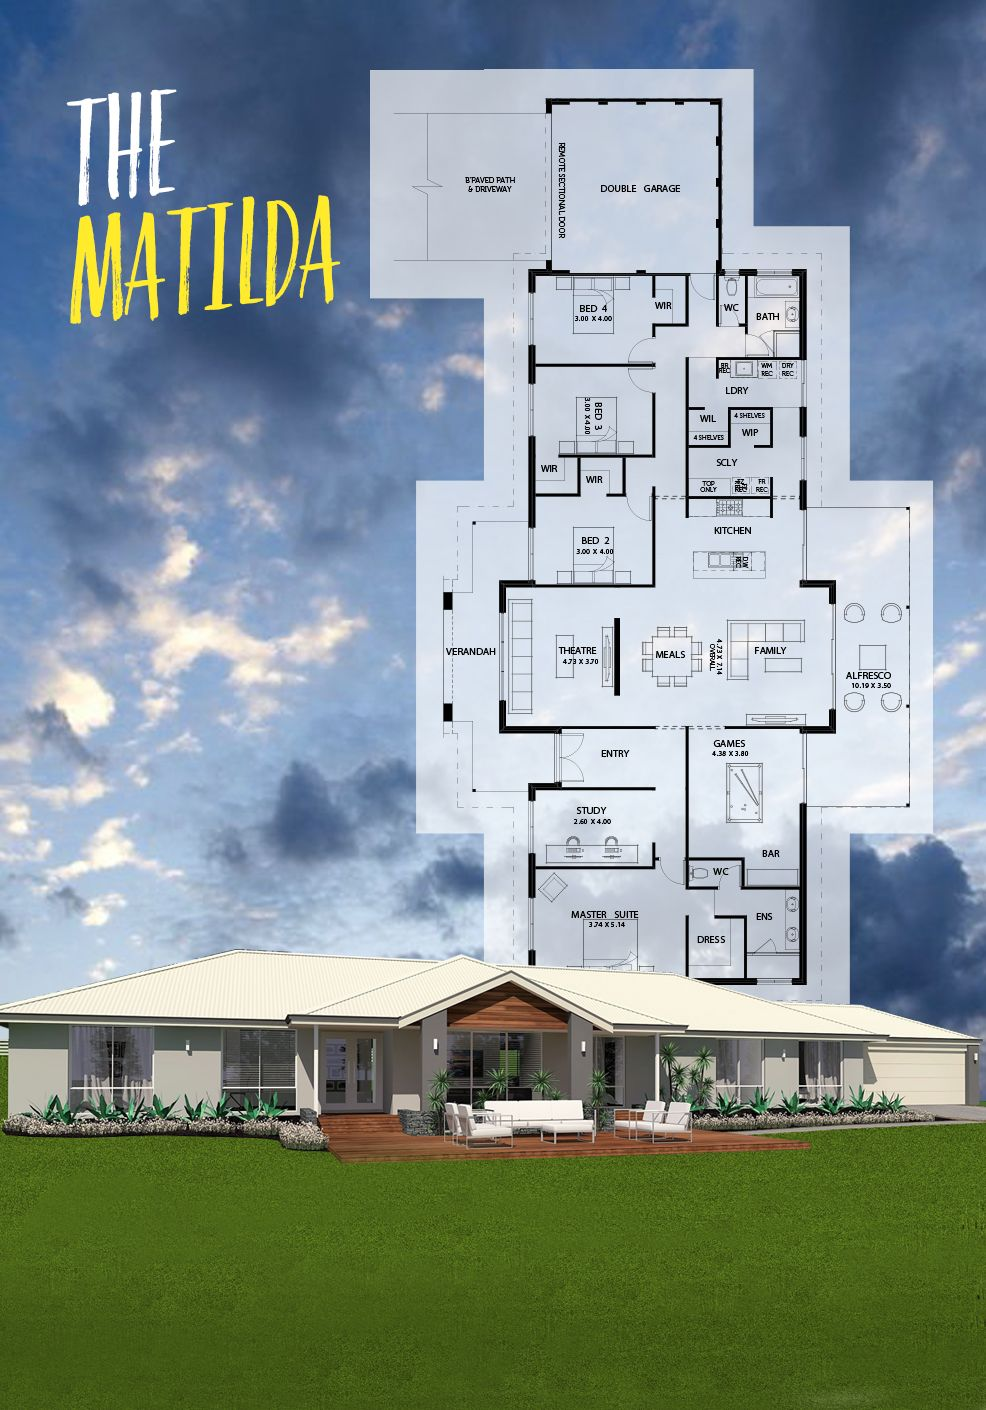 We Like To Do Things Differently Smart Er And Or First Country Design The Matilda Does Just That It S R My House Plans House Blueprints House Floor Plans